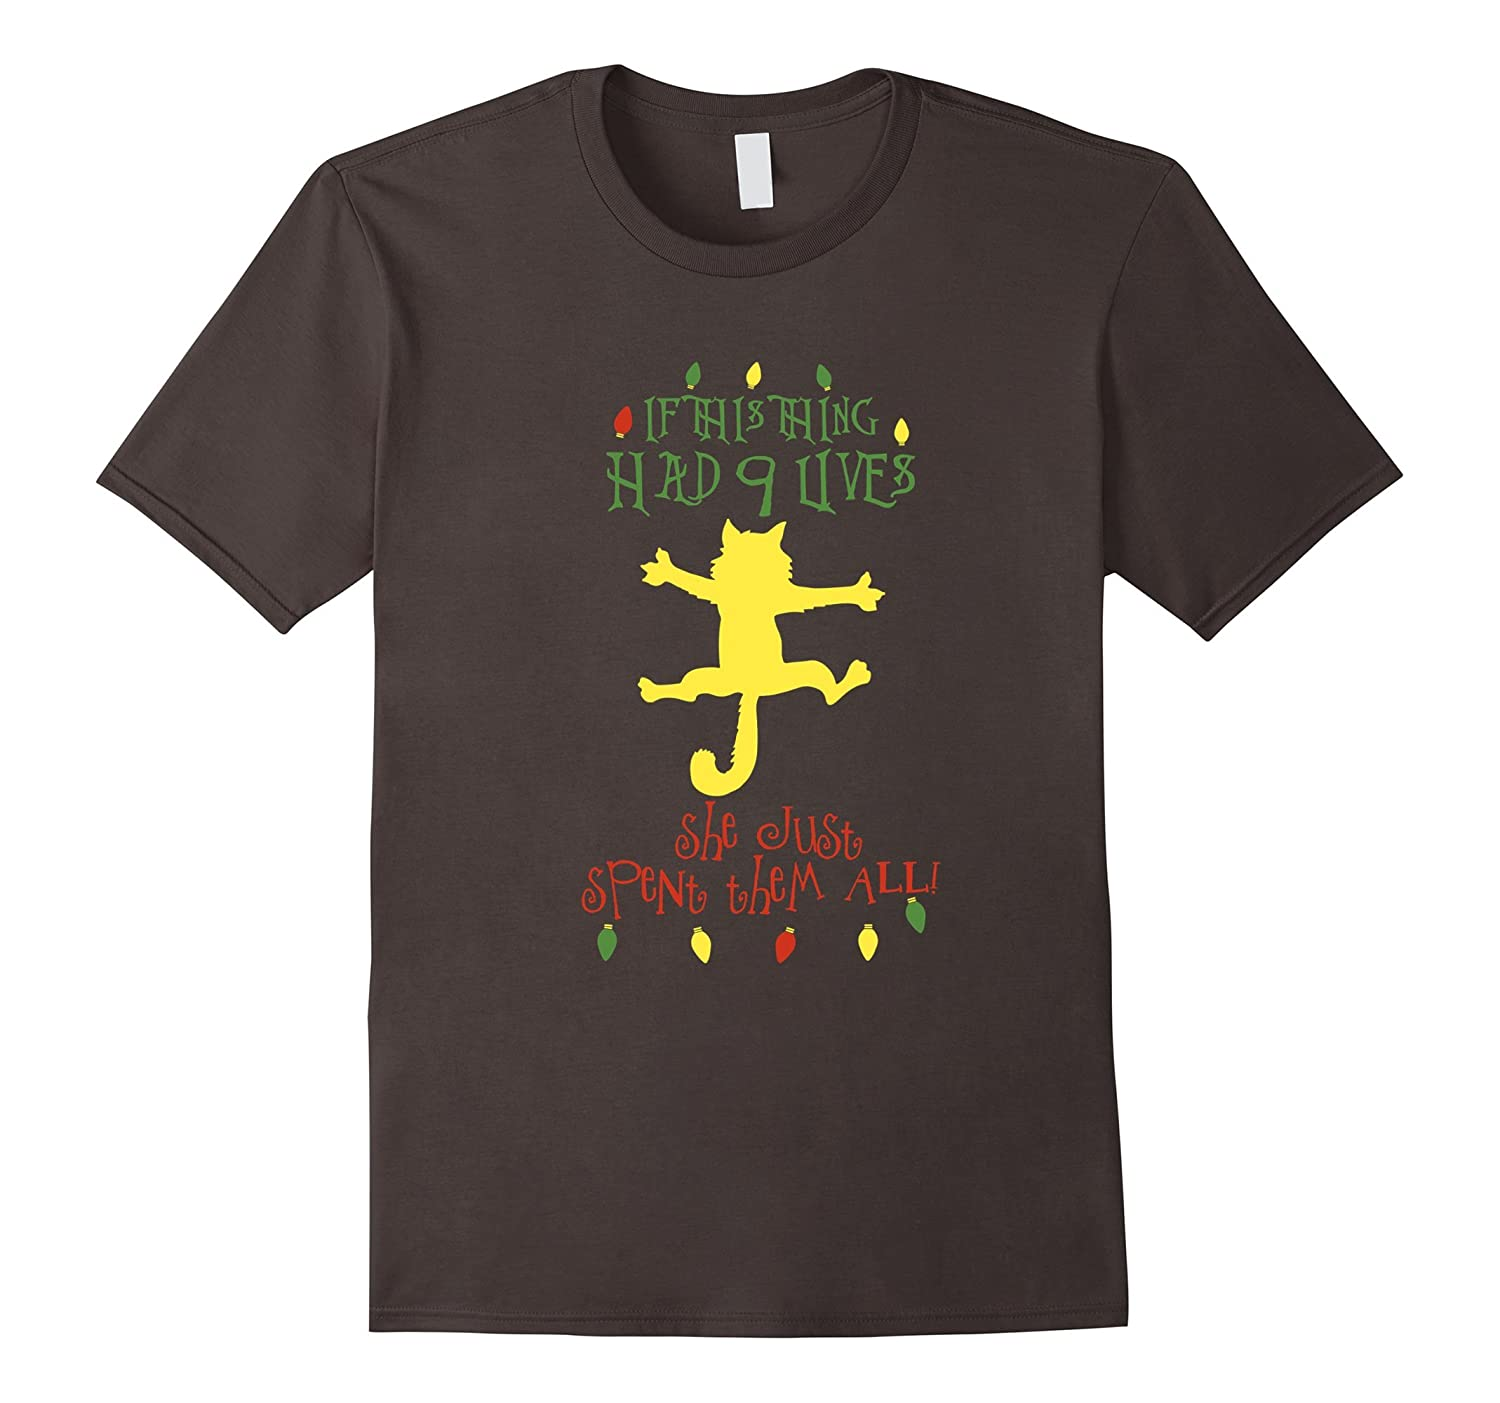 Christmas Vacation Shirt | If That Cat Had Nine Lives-ANZ - Anztshirt